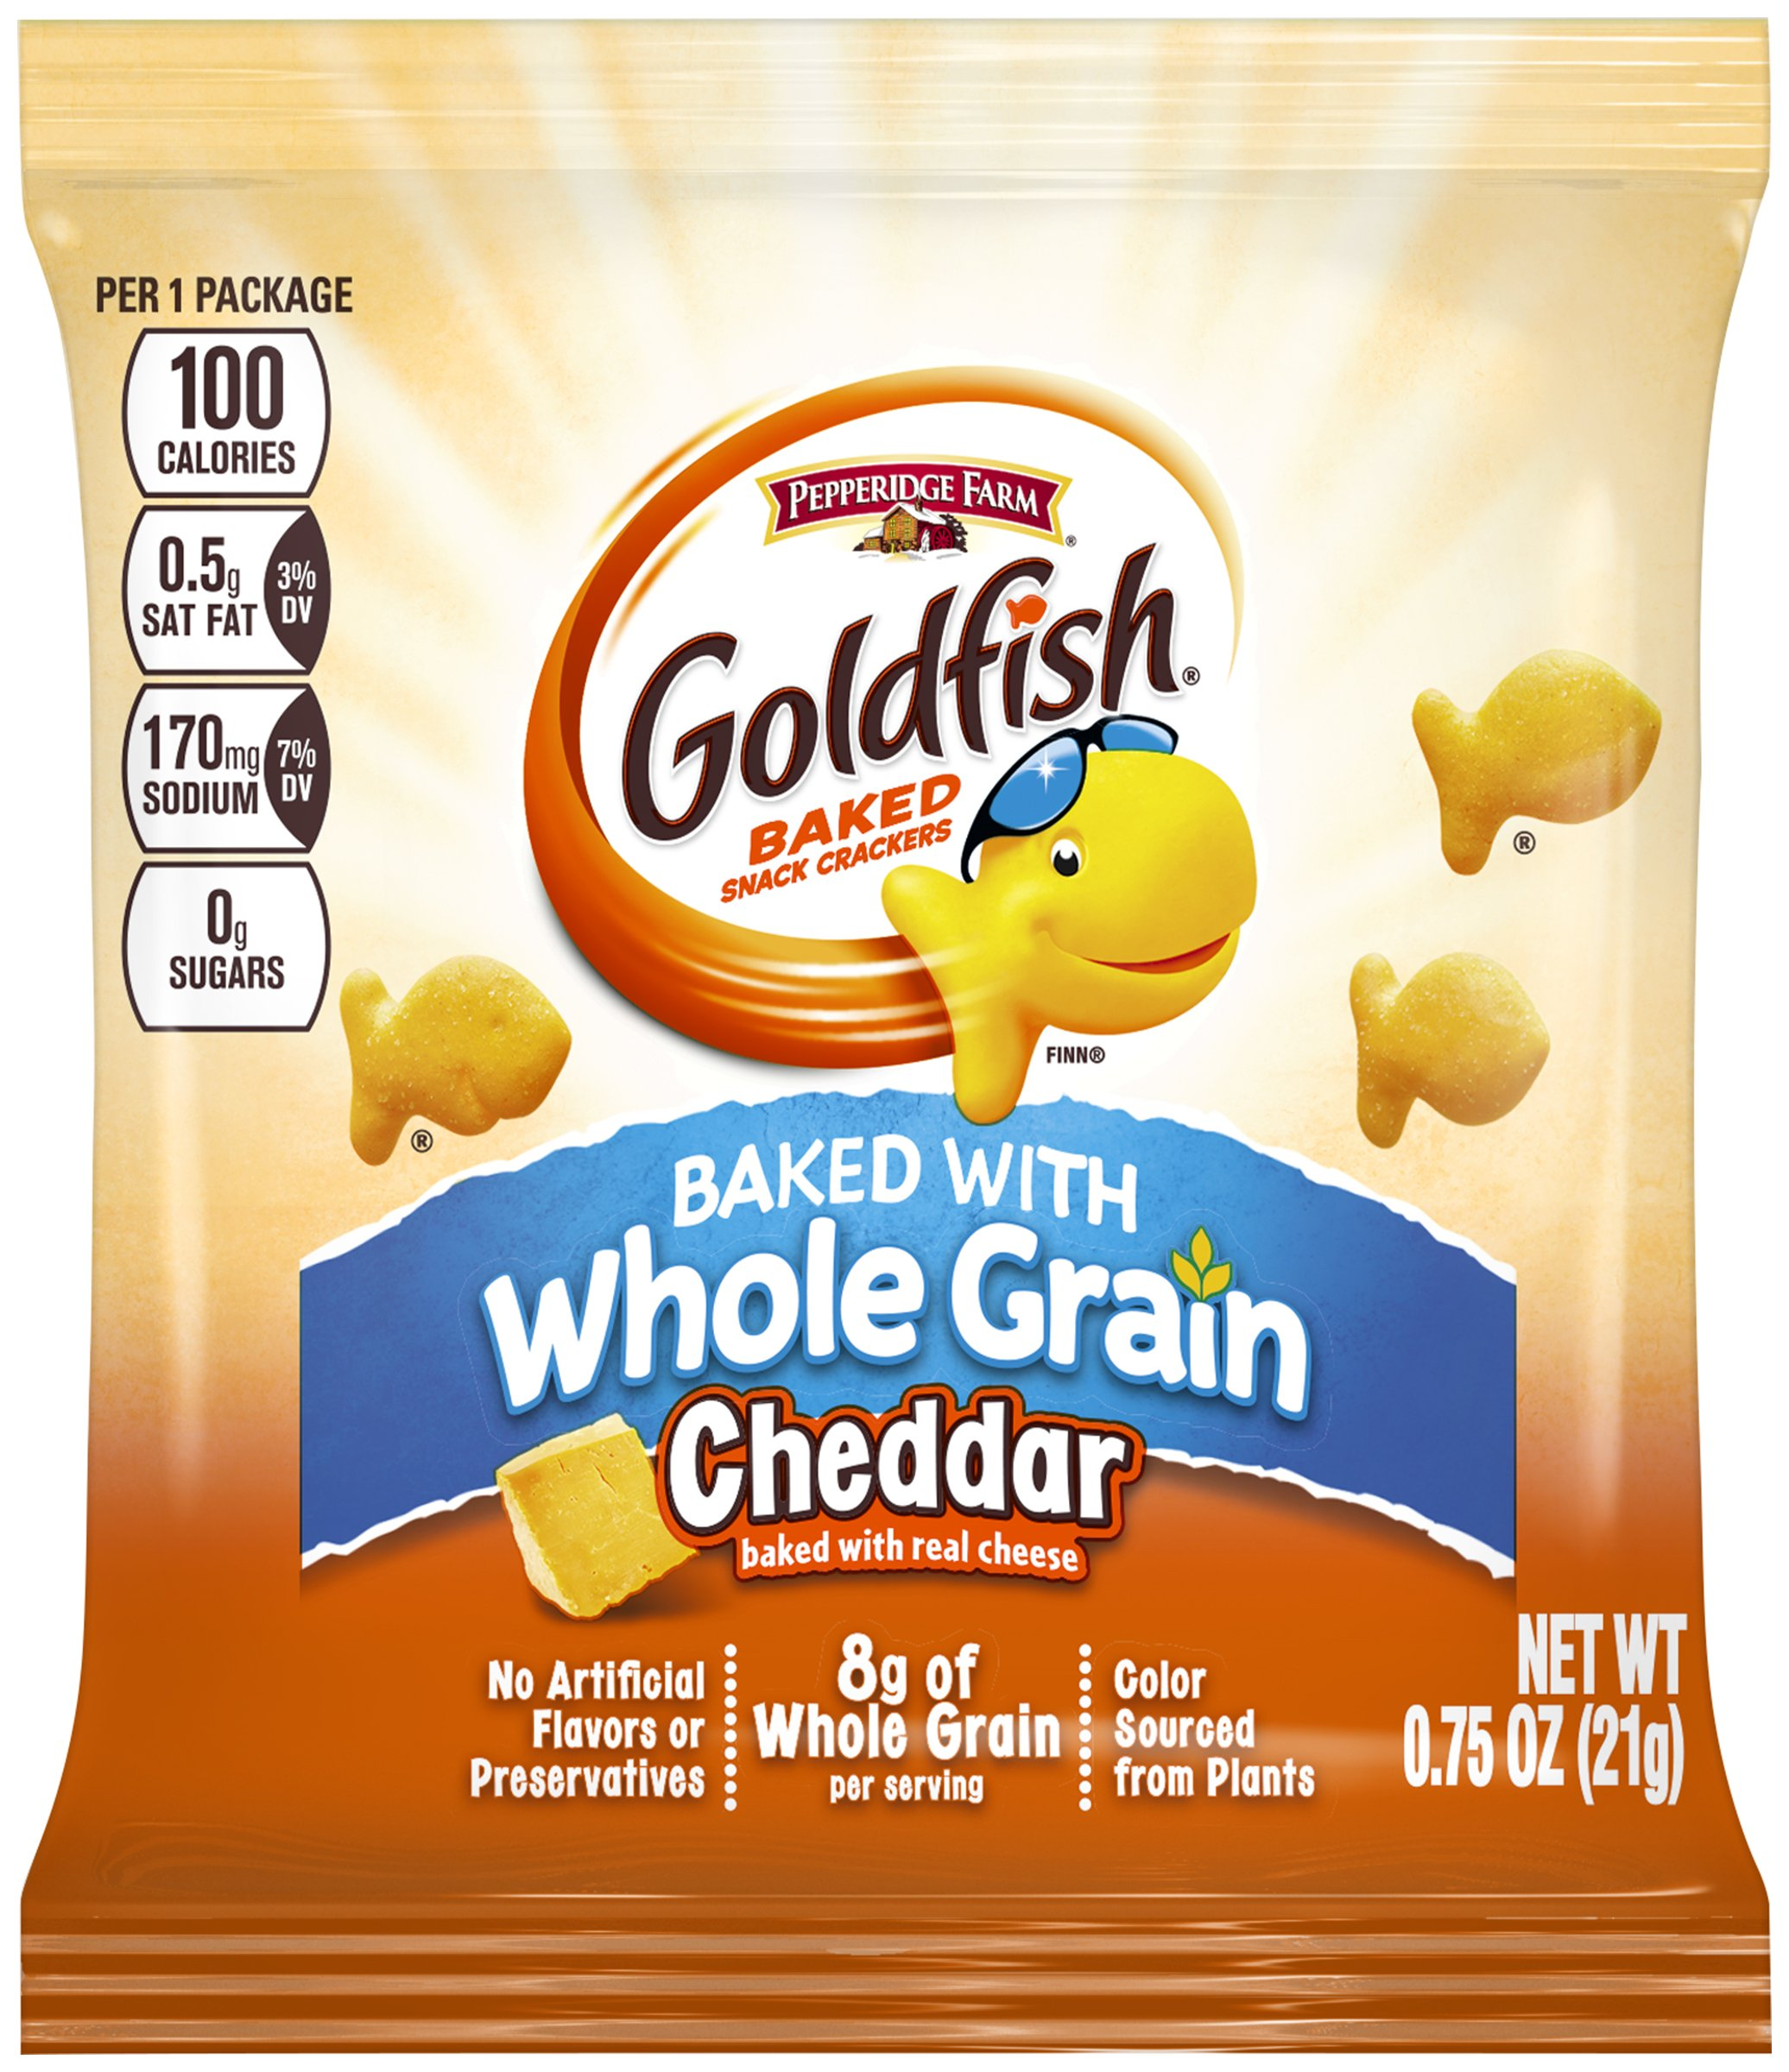 PEPPERIDGE FARM 100 Calorie Whole Grain Cheddar Goldfish, 100-Count Pouches by Pepperidge Farm